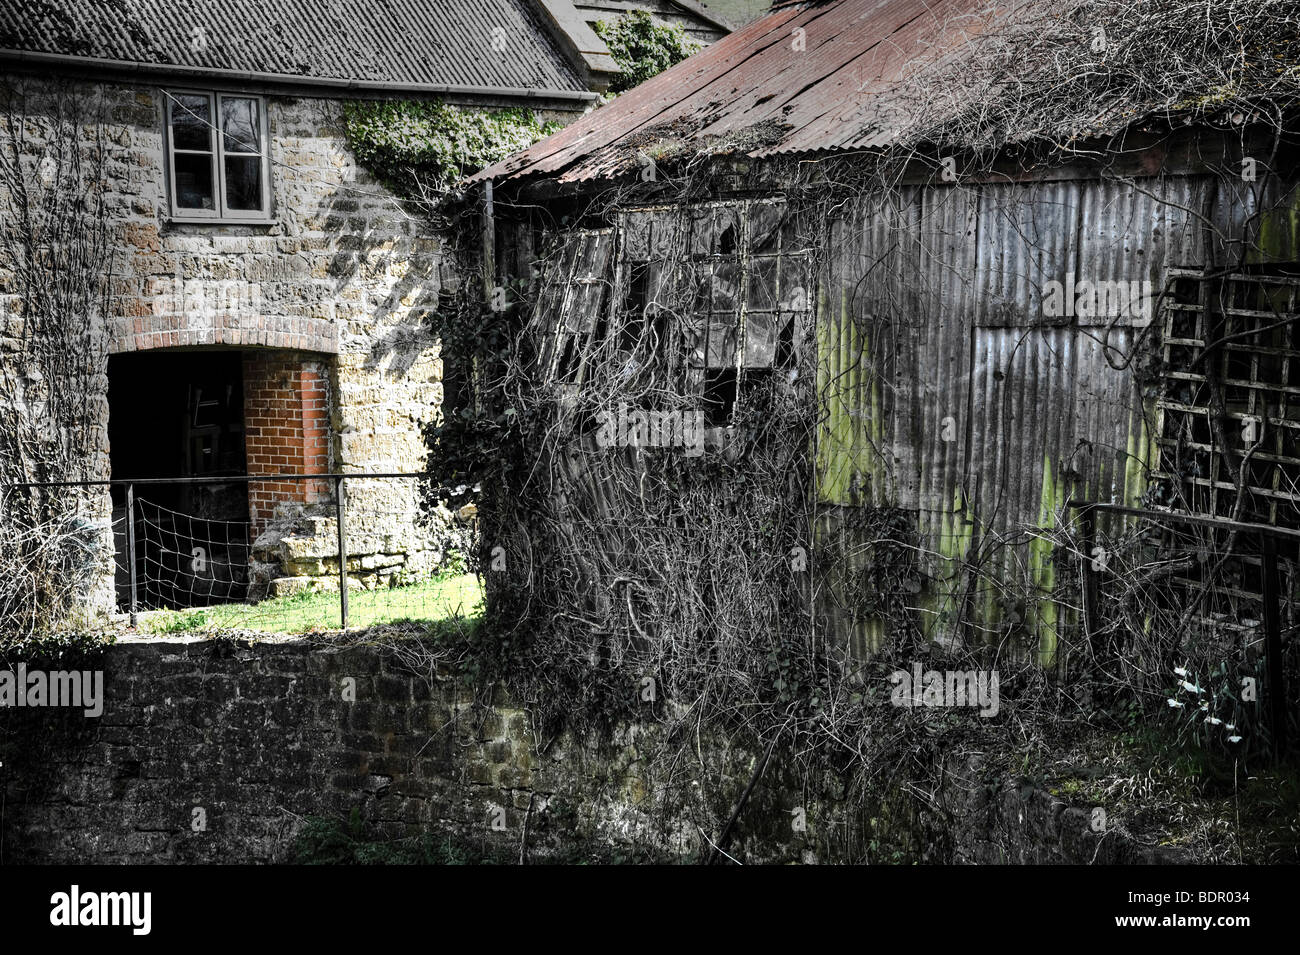 Old Farm Buildings Uk Stock Photos Amp Old Farm Buildings Uk